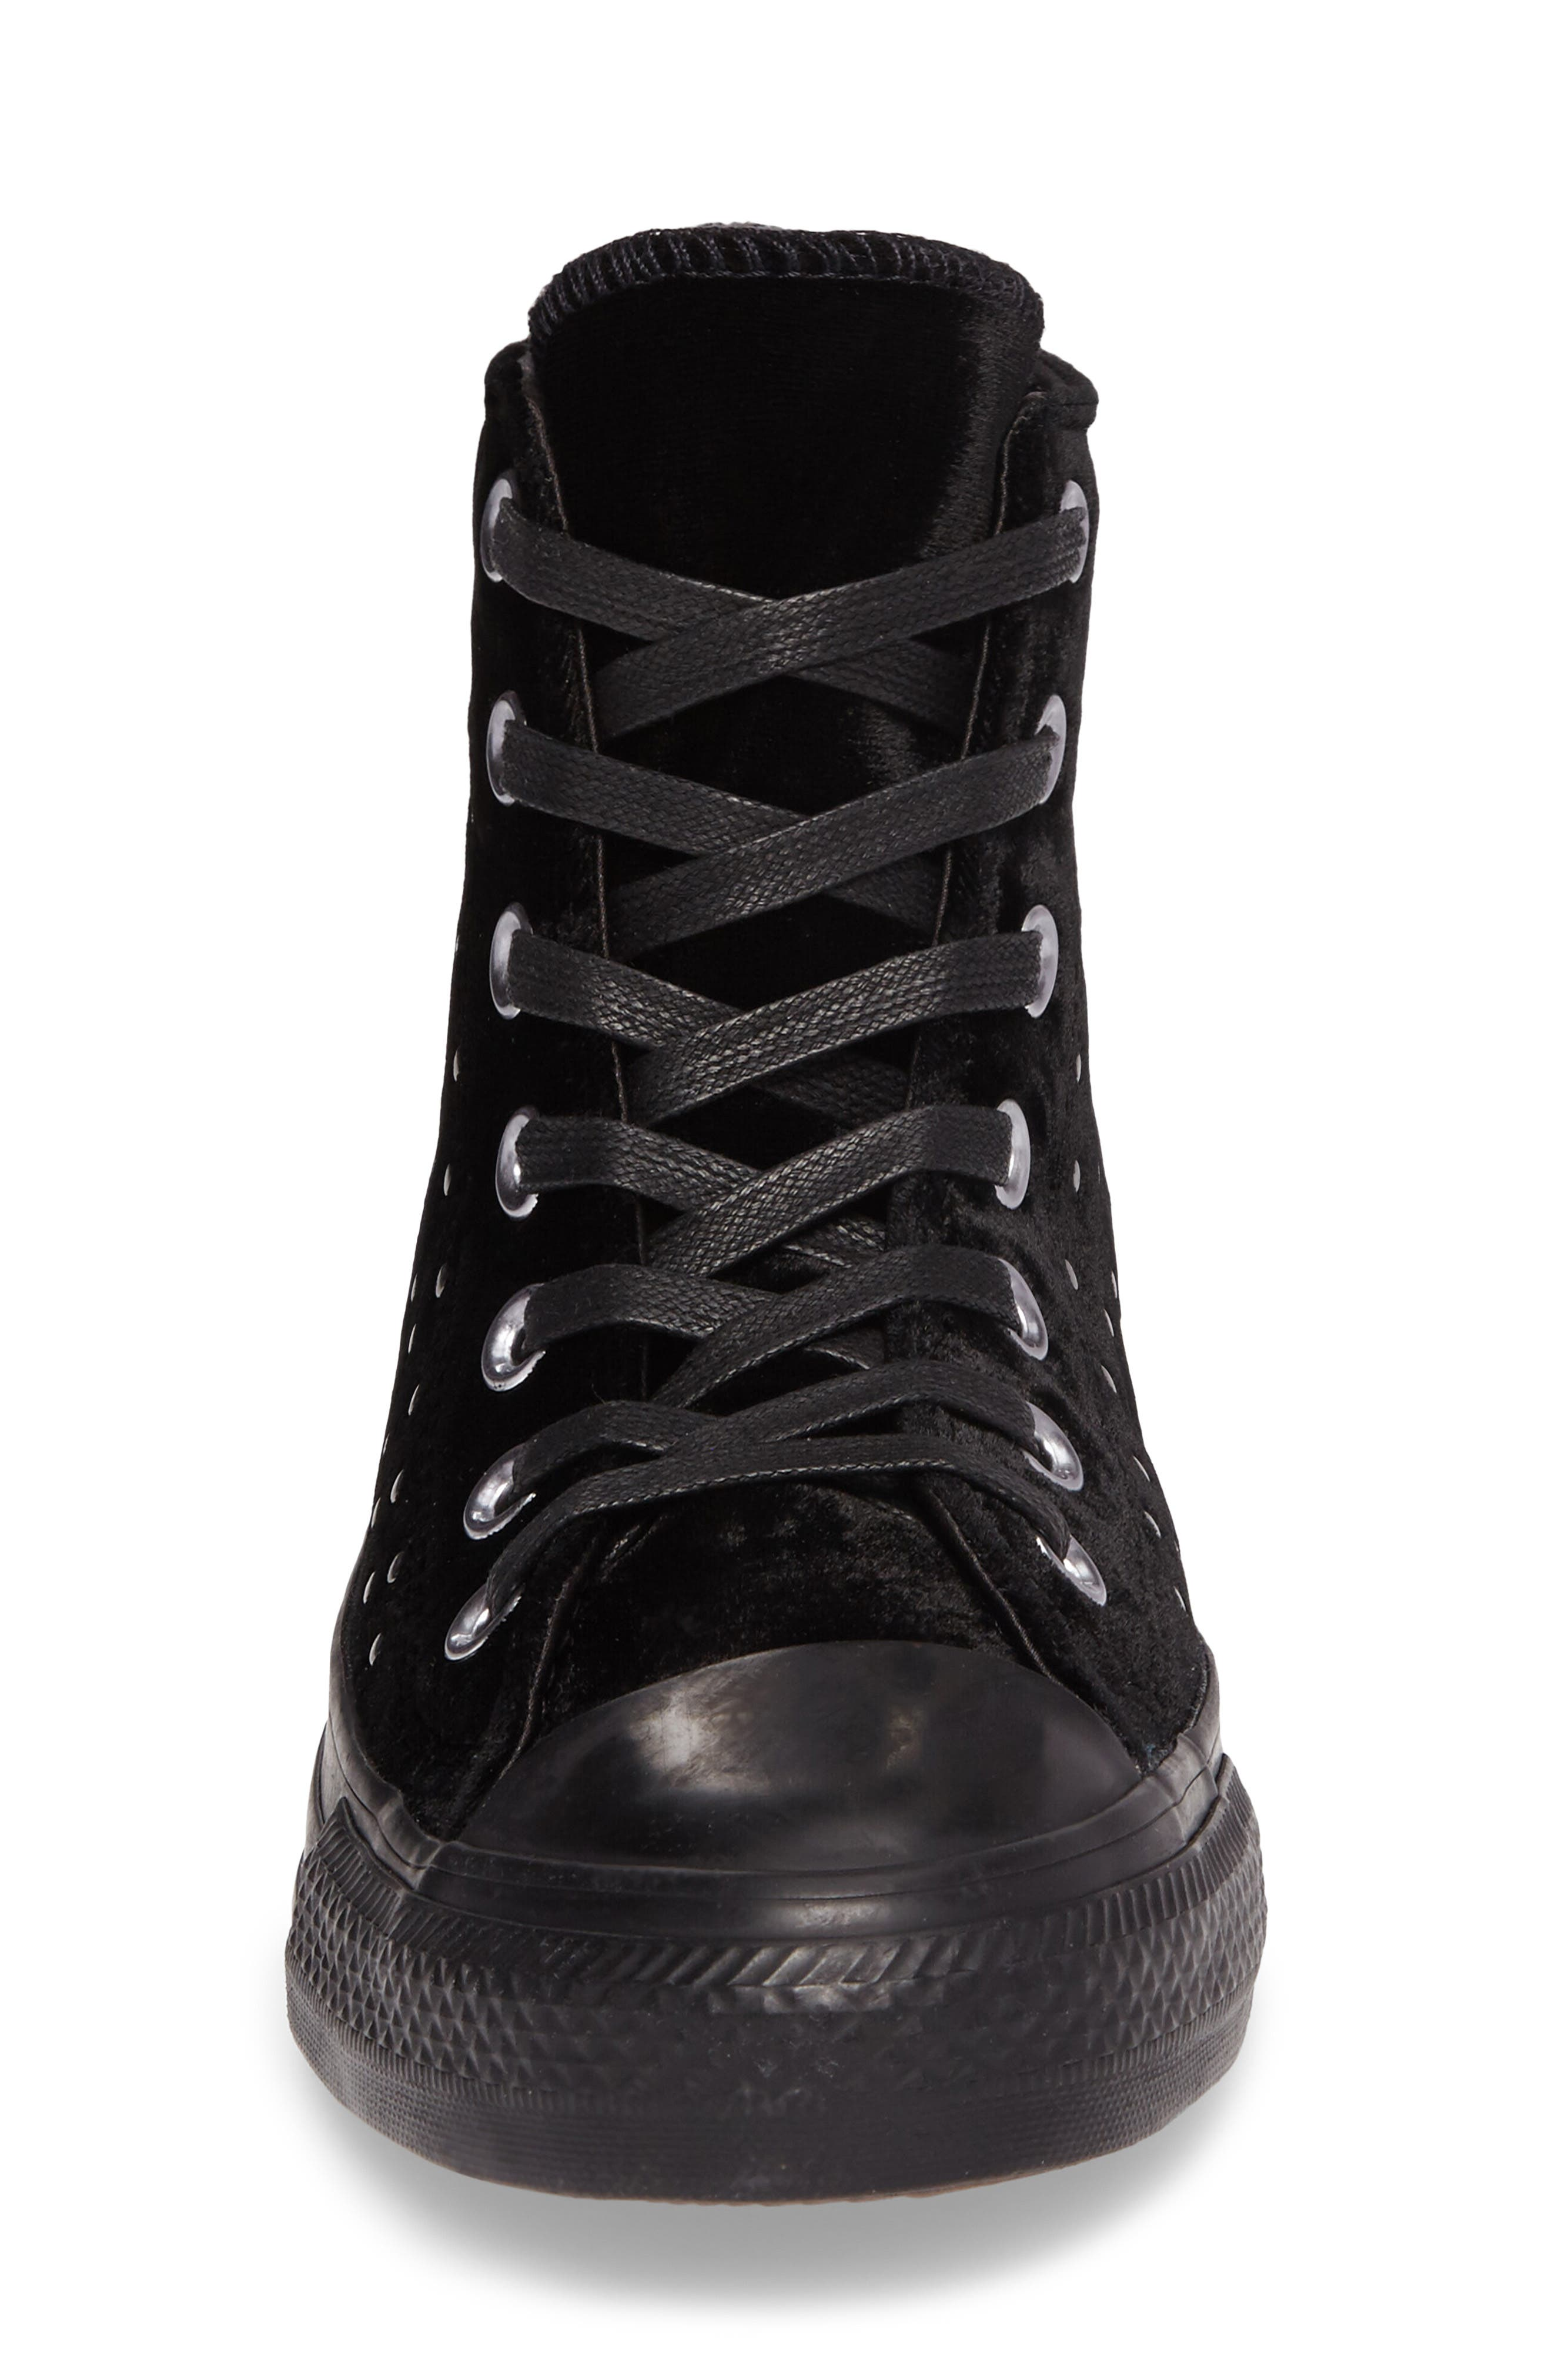 Chuck Taylor<sup>®</sup> All Star<sup>®</sup> Studded High Top Sneakers,                             Alternate thumbnail 4, color,                             001